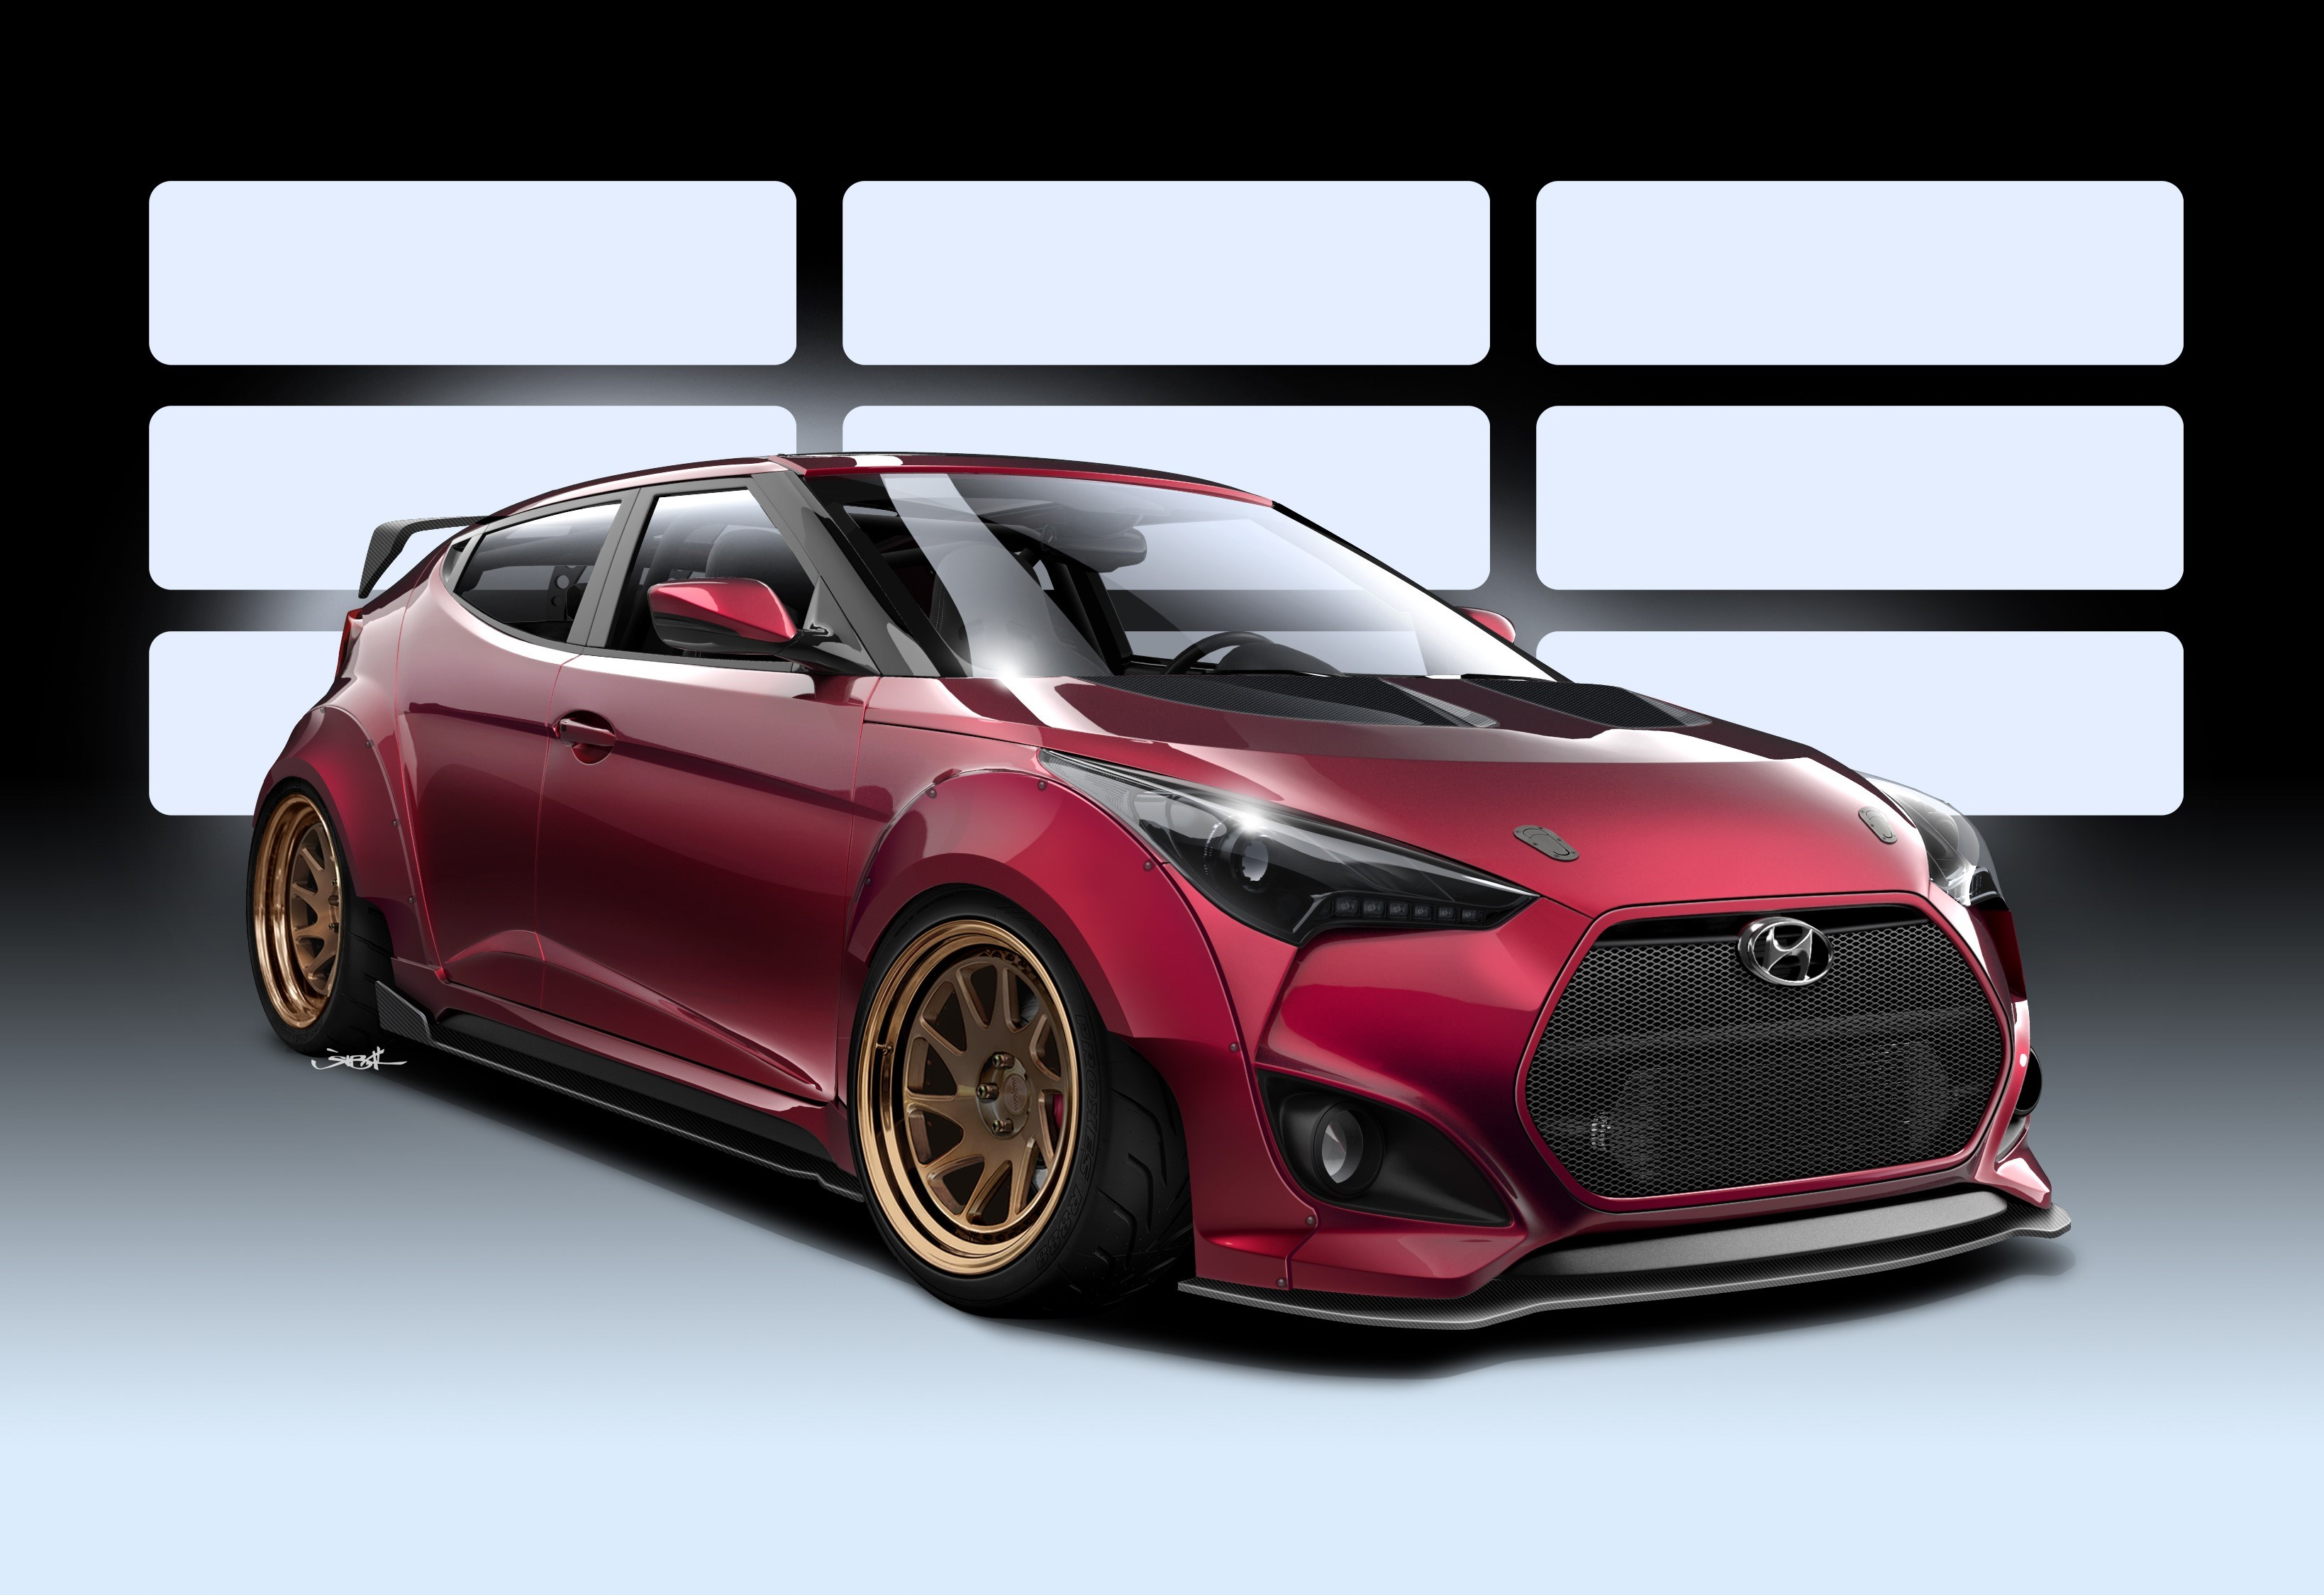 Hyundai and Gurnade Inc. Link Up to Create Race-Ready Veloster Concept for 2016 Sema Show © Hyundai Motor Company